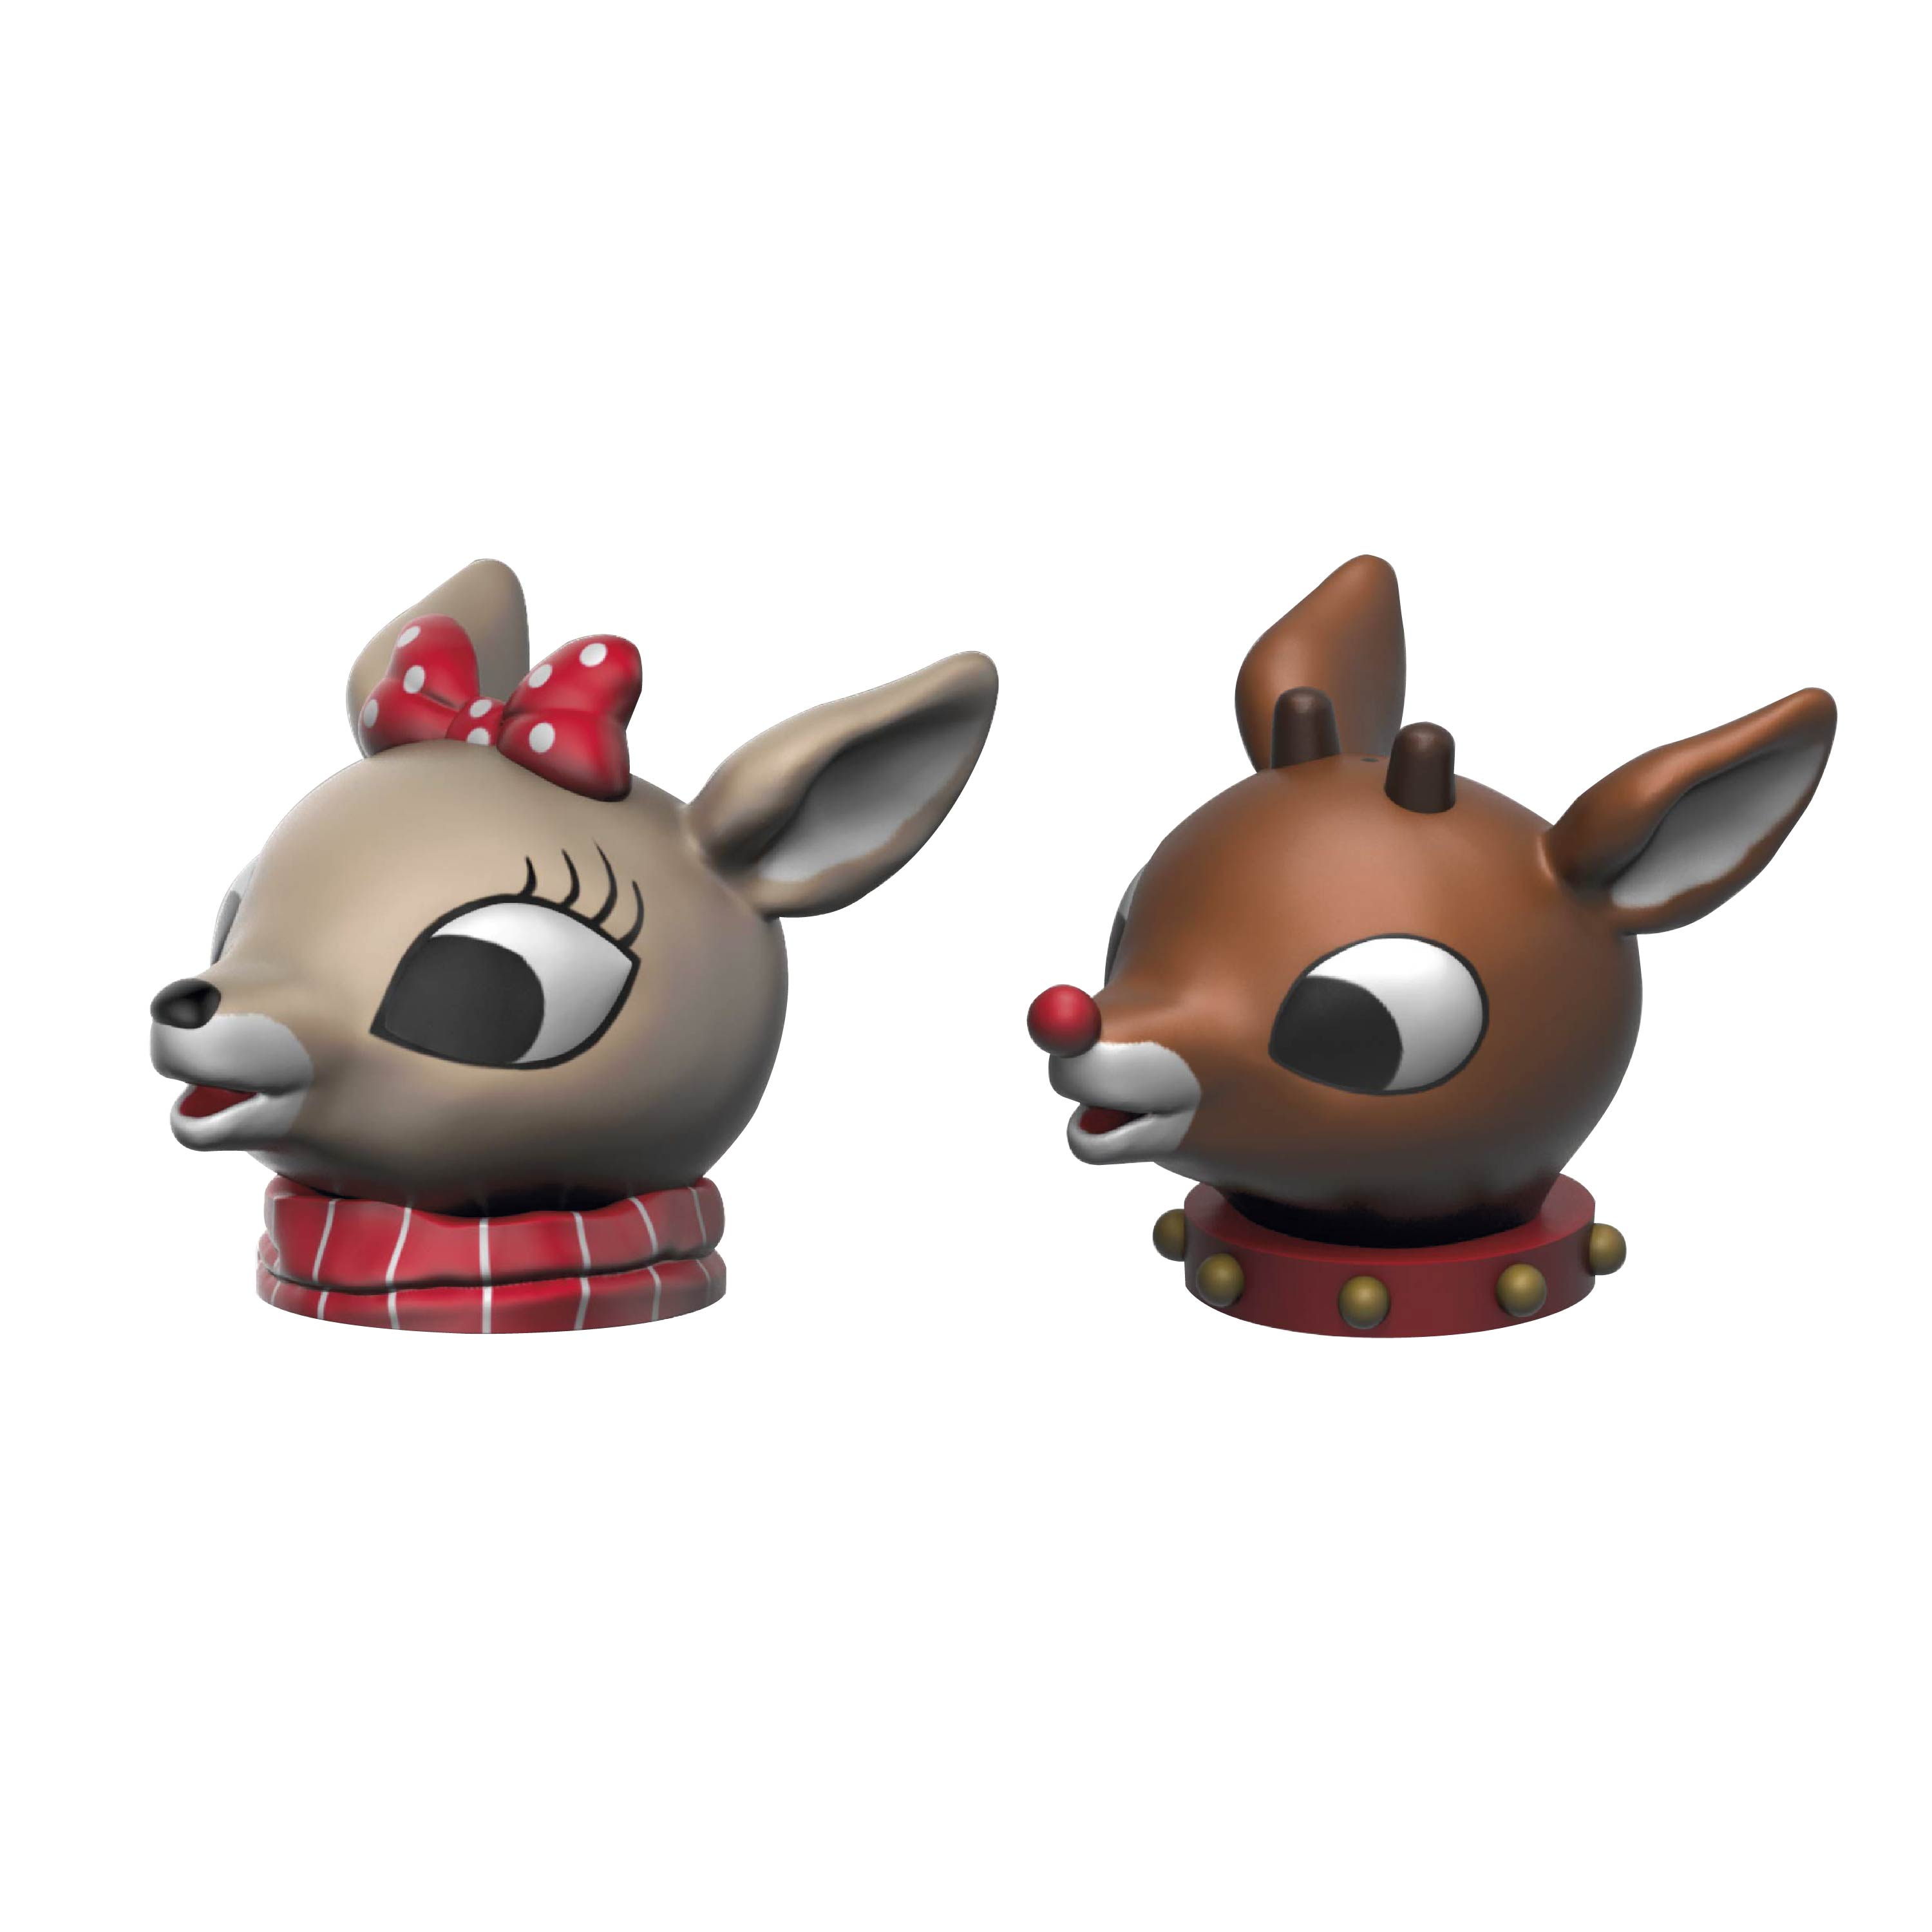 Rudolph the Red-Nosed Reindeer Salt and Pepper Shaker Set, Rudolph & Clarice, 2-piece set slideshow image 4